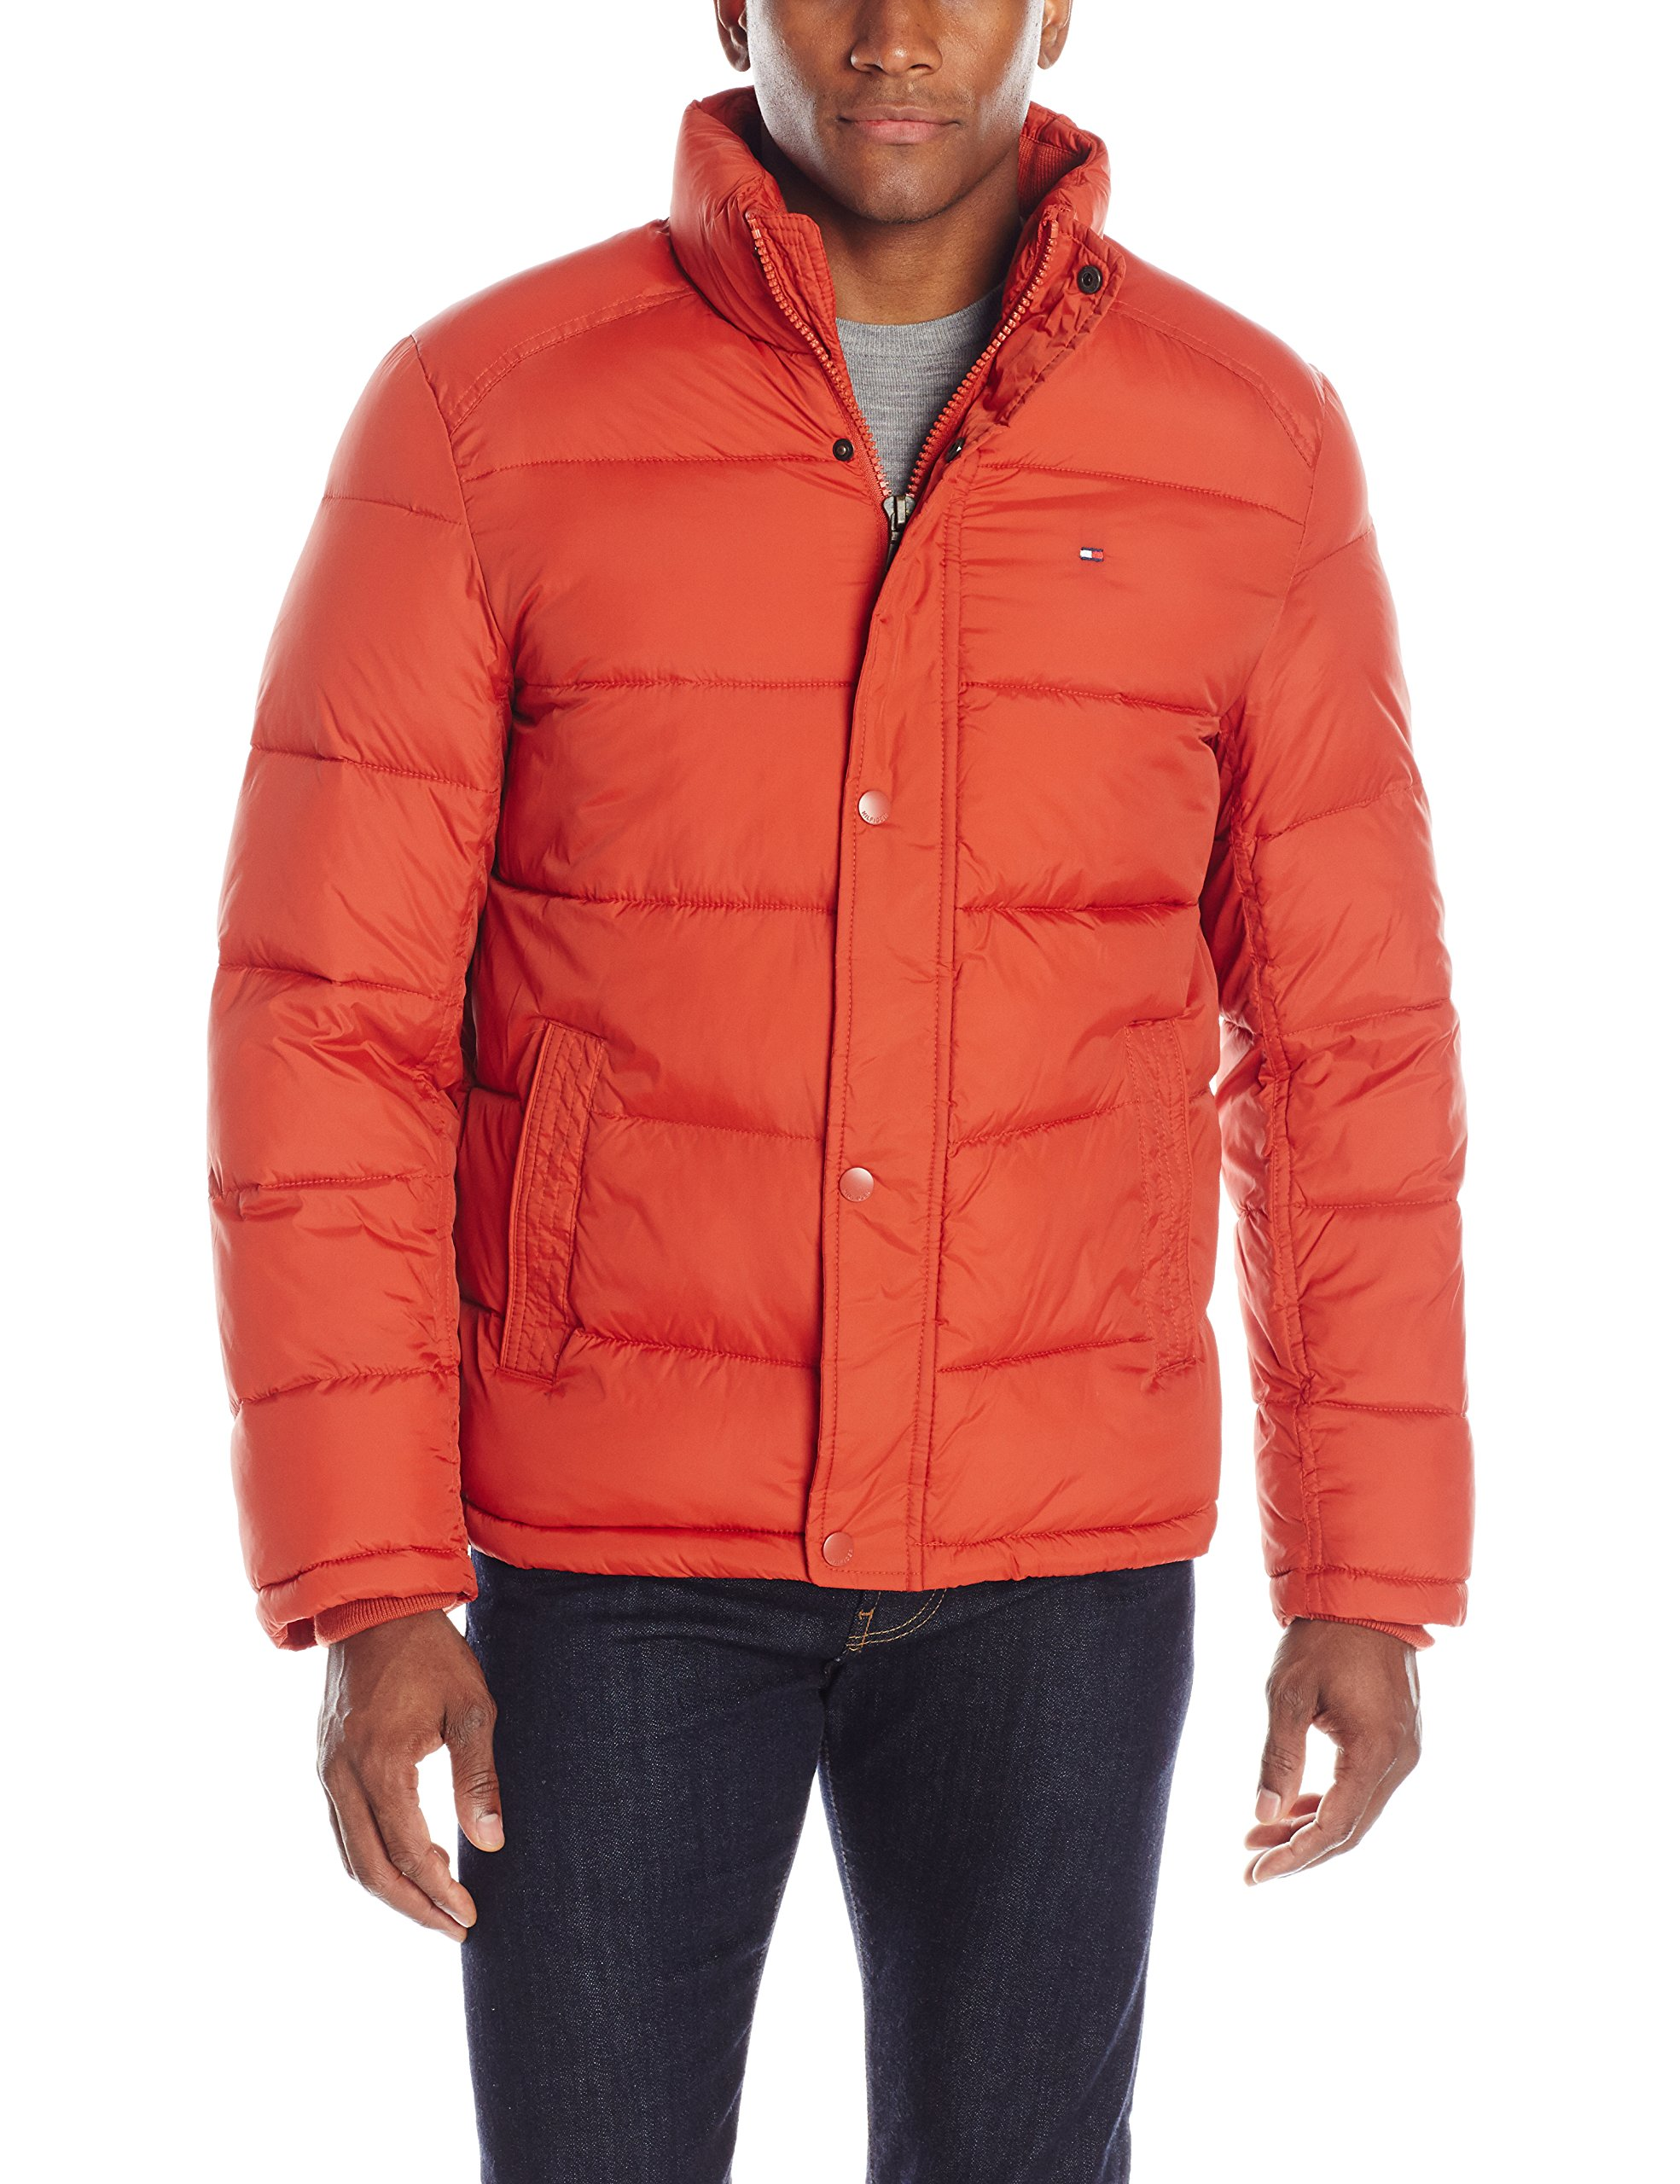 Tommy Hilfiger Men's Classic Puffer Jacket, Burnt Orange, Large by Tommy Hilfiger